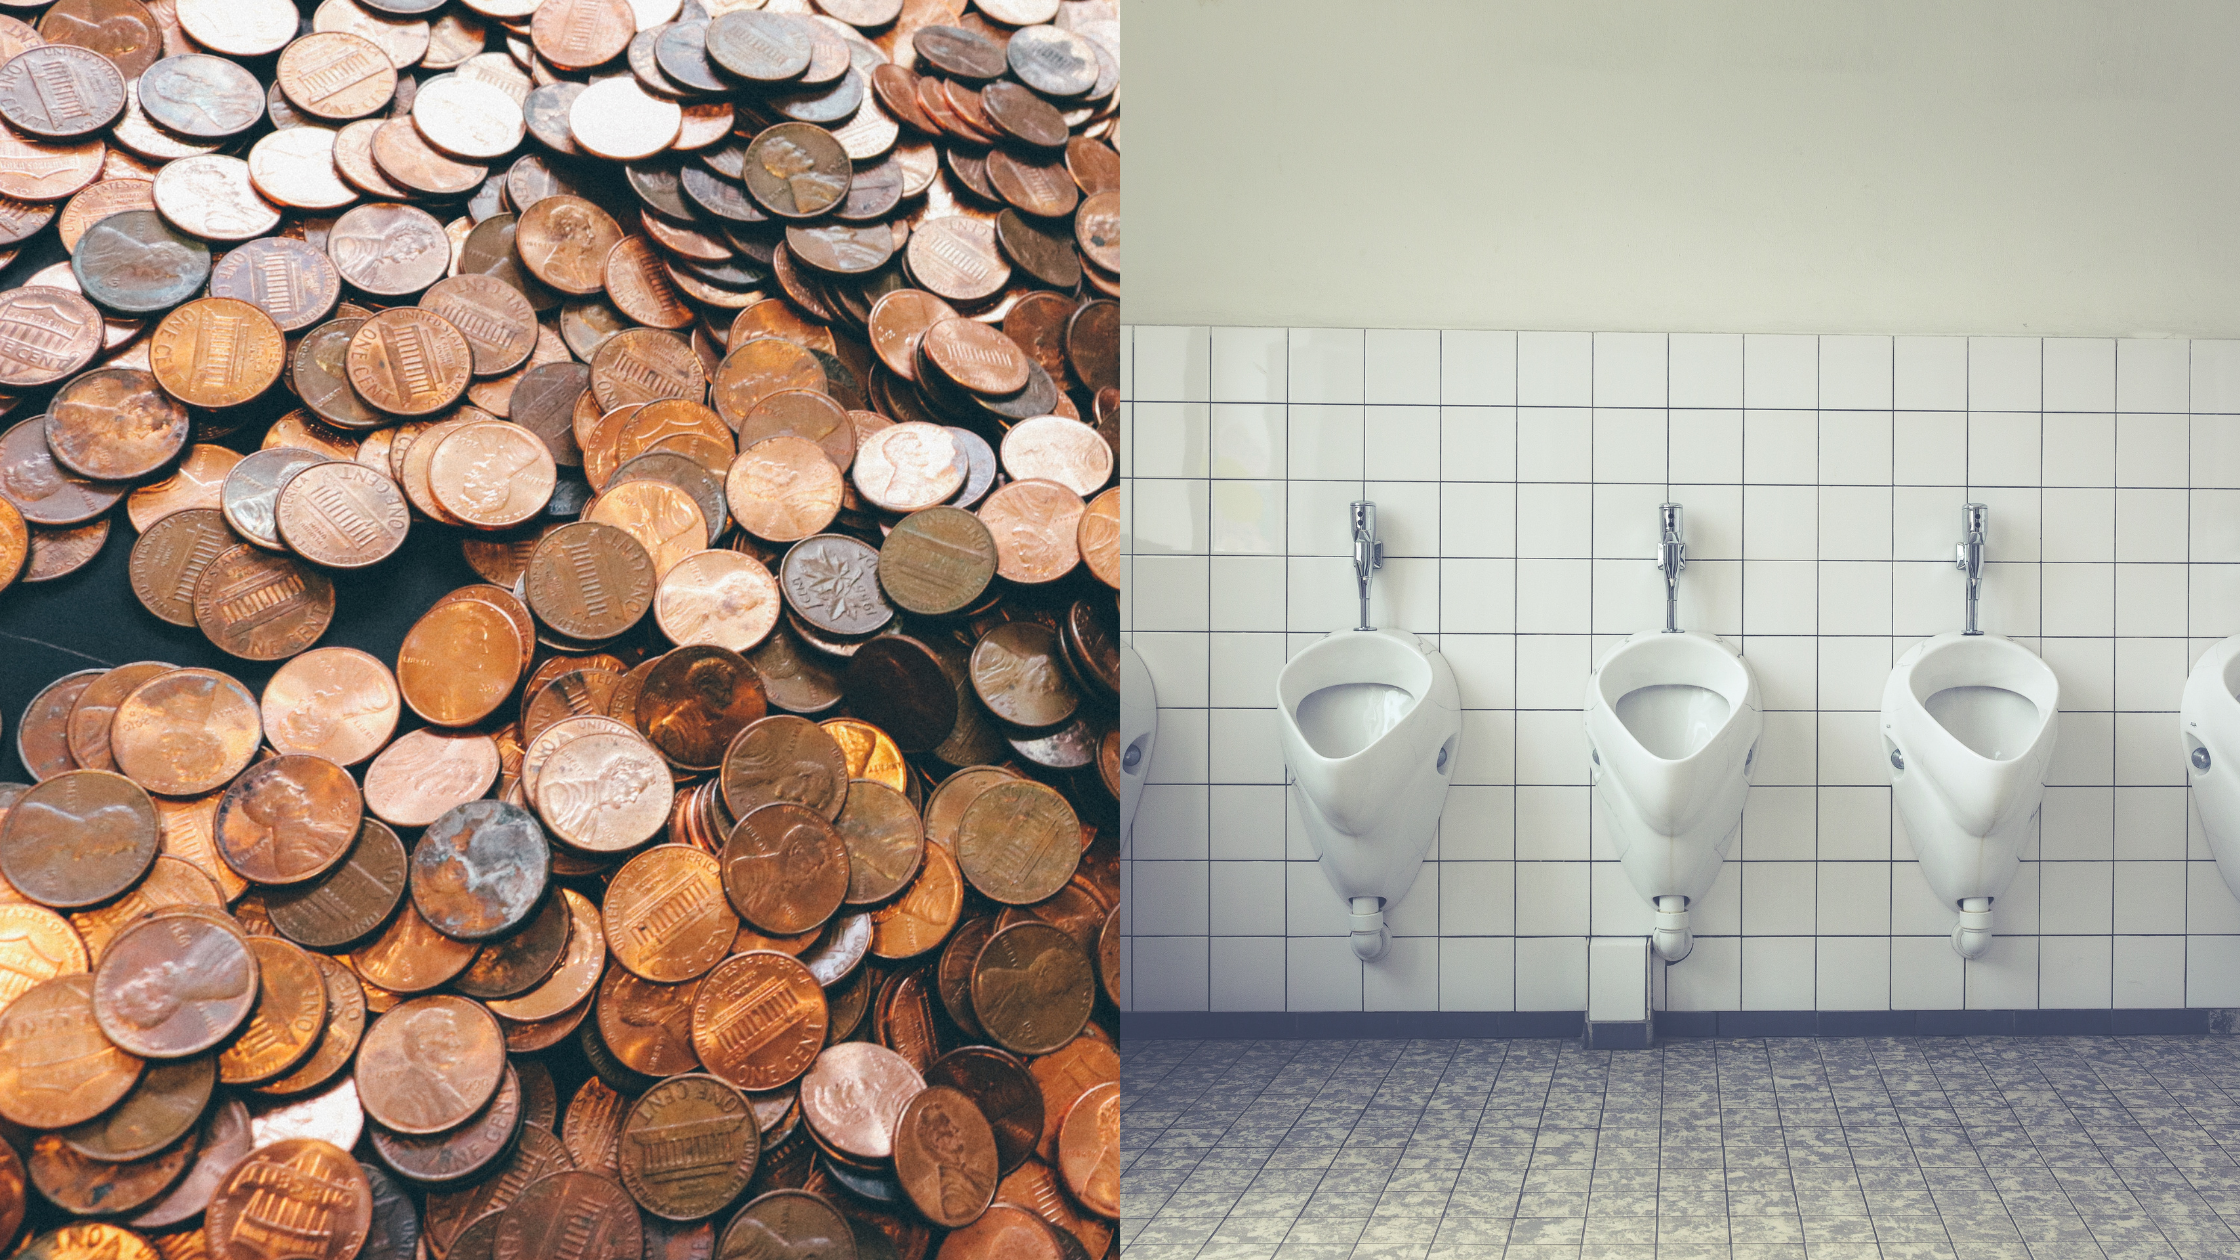 spend-a-penny-urinal-toilet